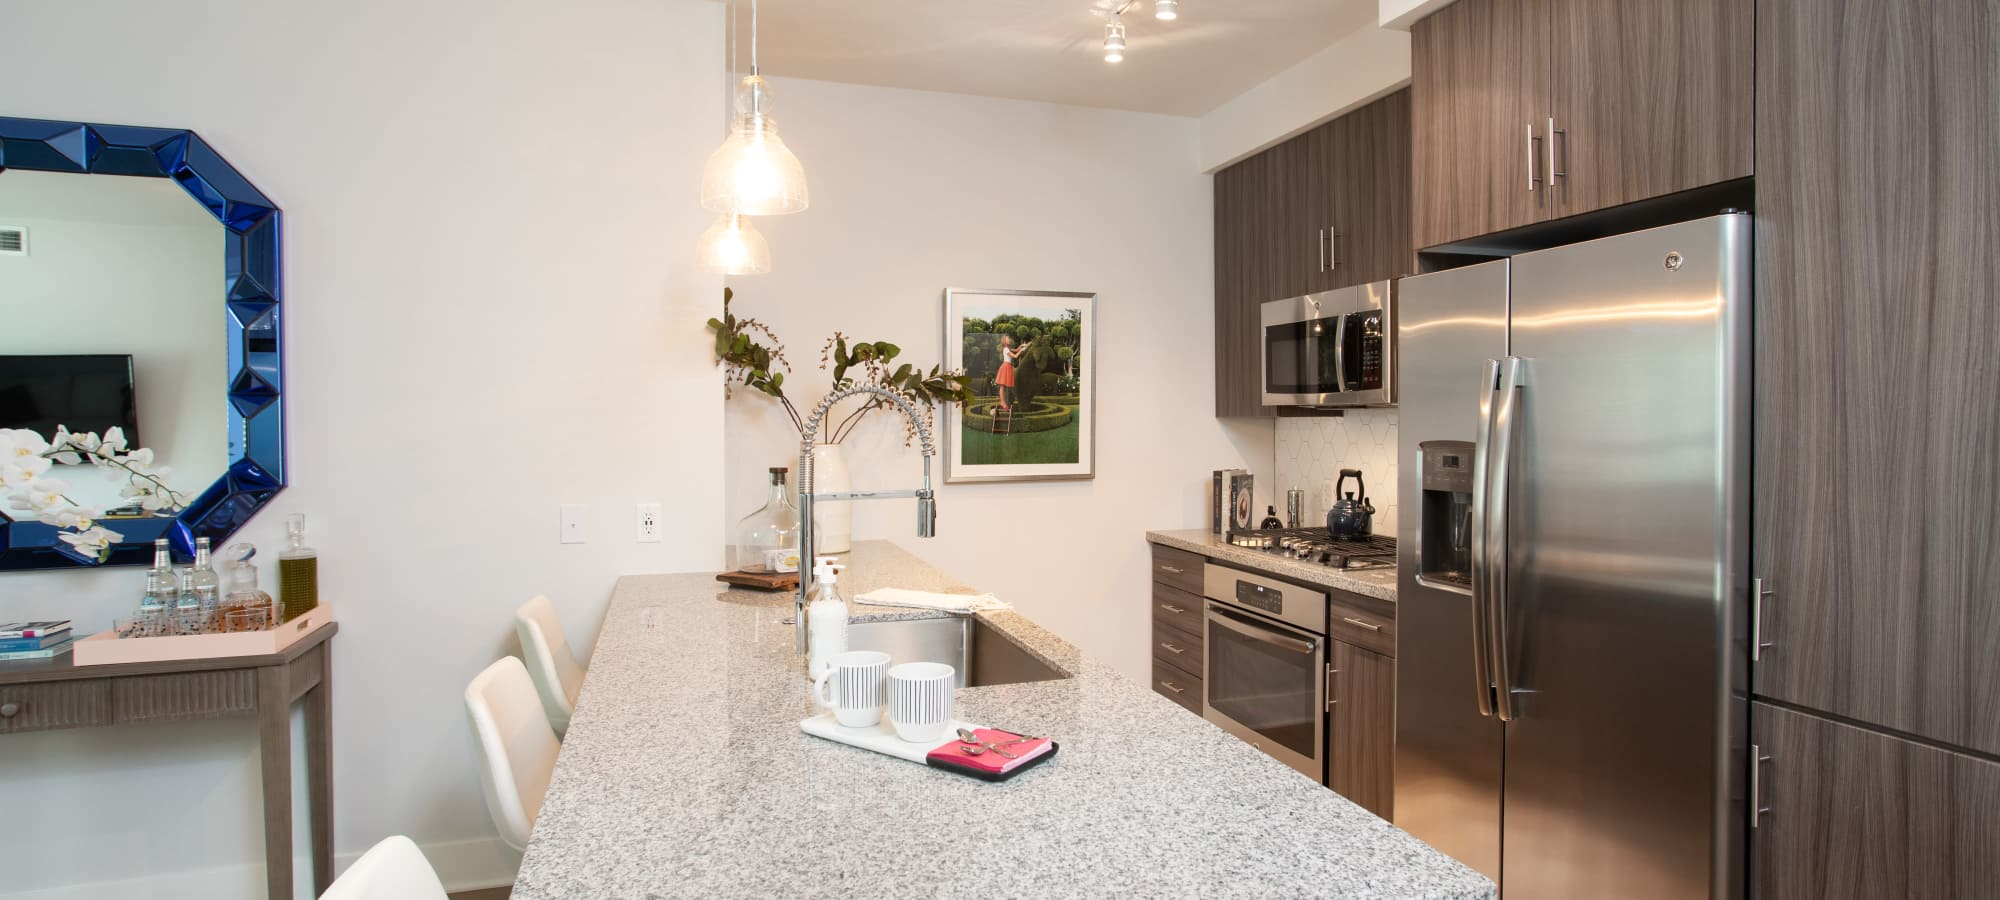 Spacious kitchen with a breakfast bar at Lakeside Drive Apartments in Tempe, Arizona